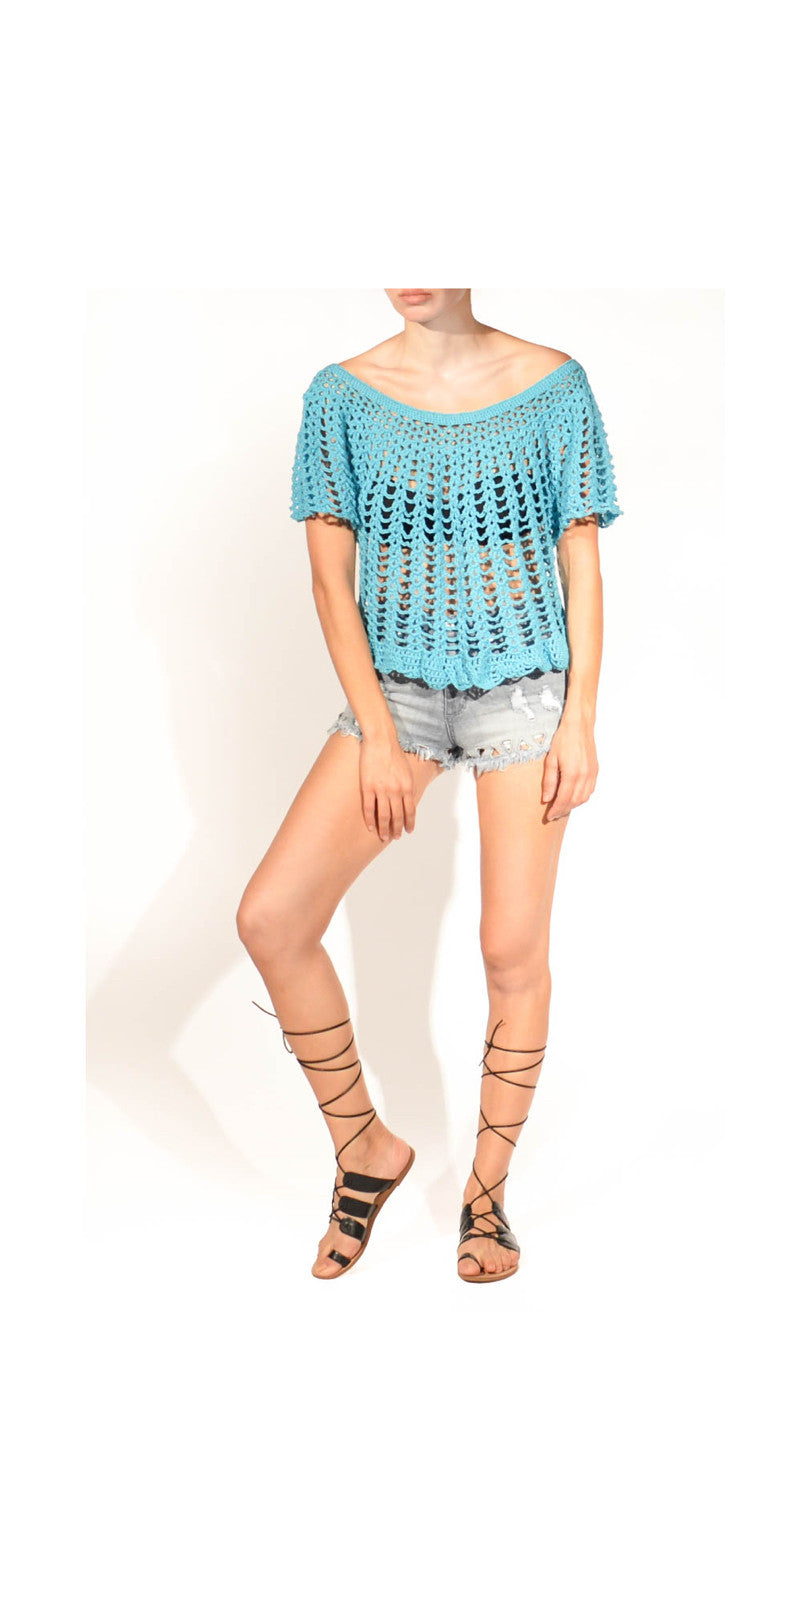 Mayan Maven Crochet A line Sweet Scallop Hem Top: Size Medium